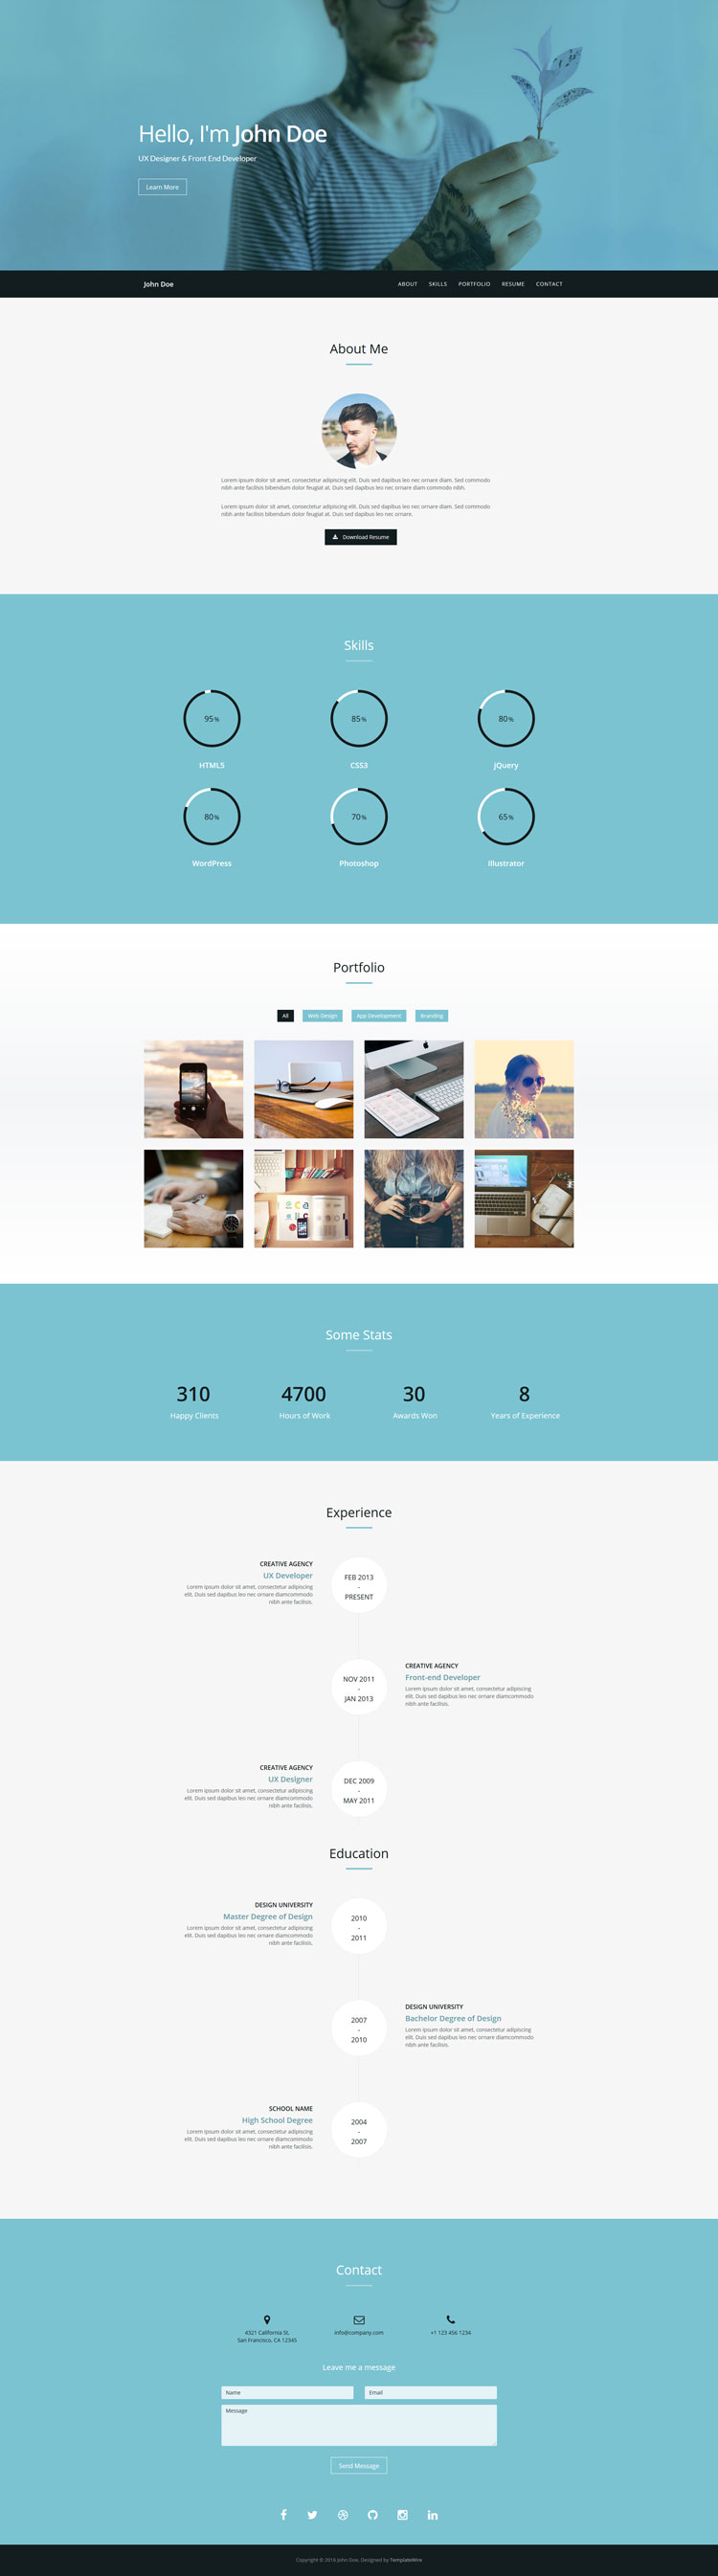 Verum is a free one page HTML resume / CV template built with ...